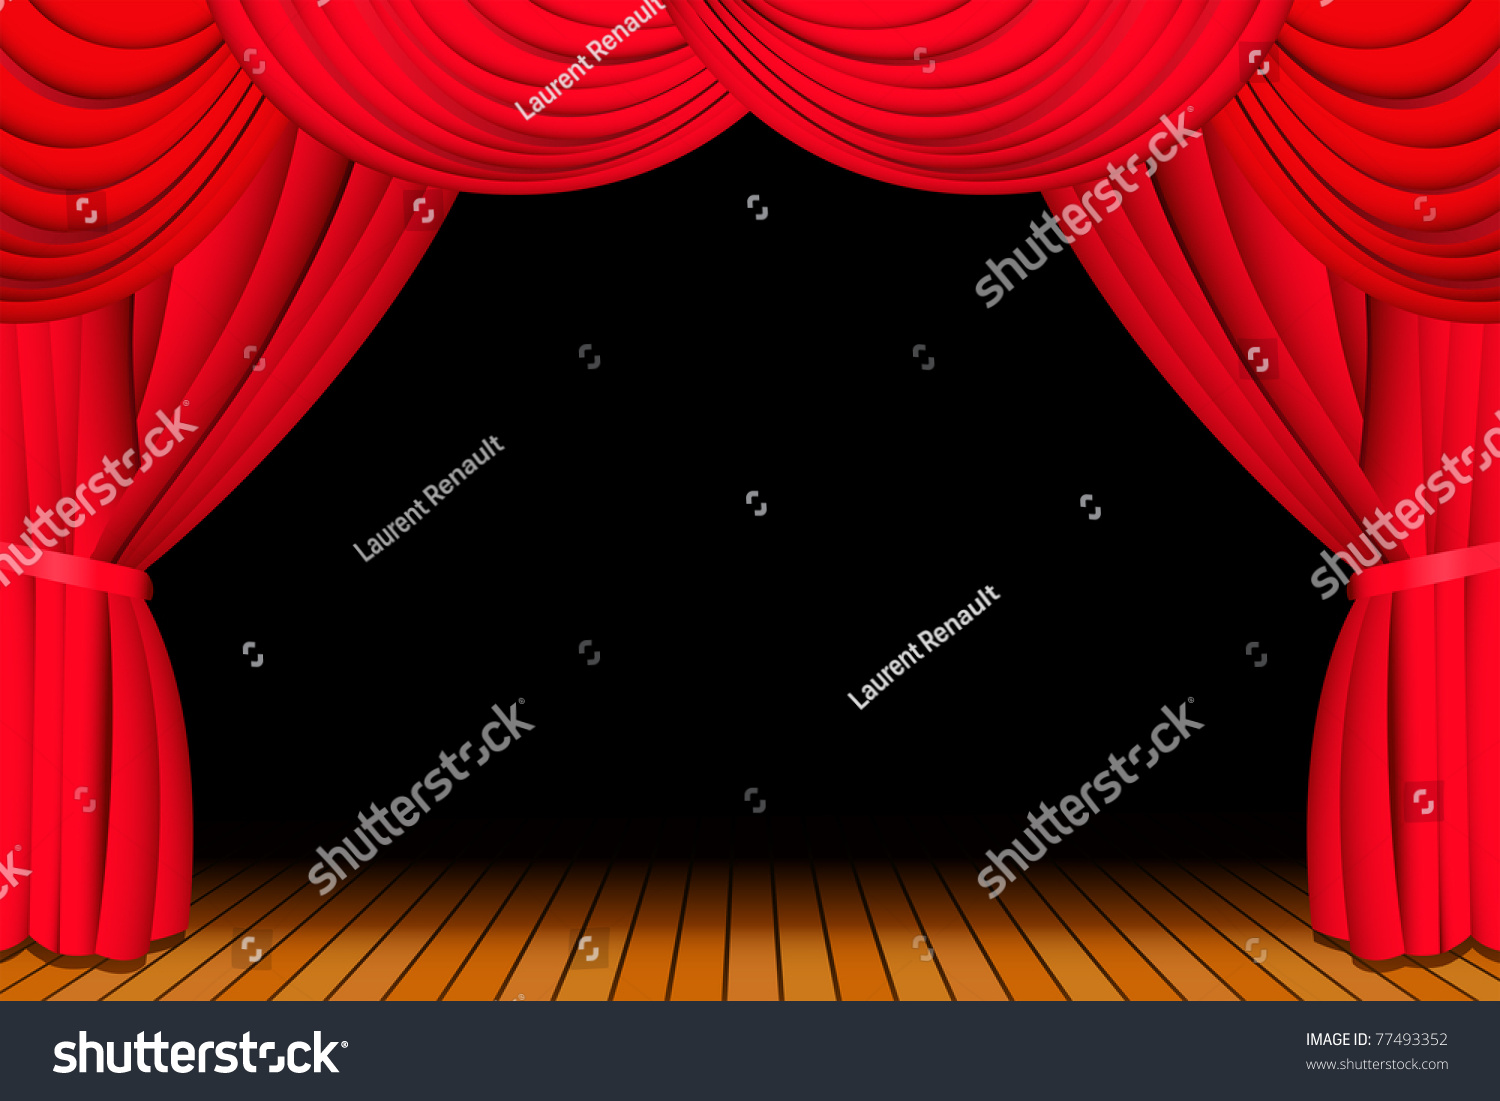 Red curtains with spotlight - Red Curtains Show Red Stage Curtains Open Red Stage Curtains